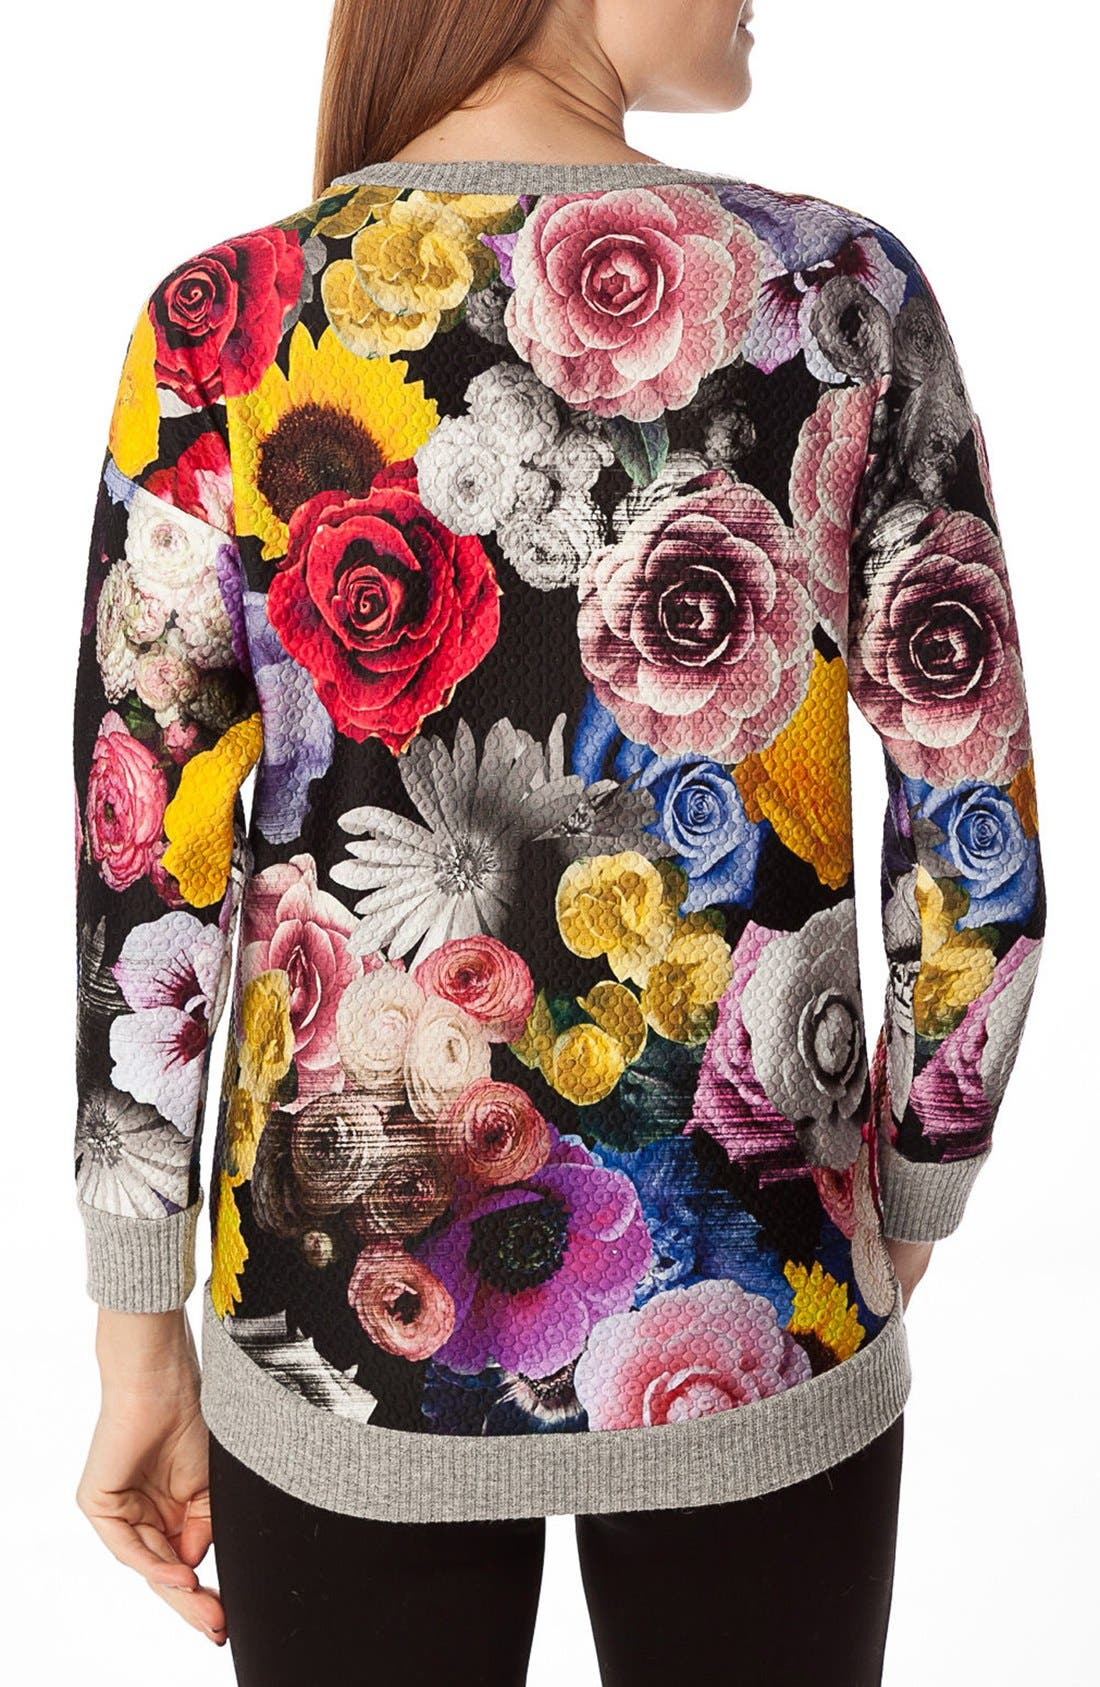 'Ocean' Floral Print Quilted Maternity Sweatshirt,                             Alternate thumbnail 2, color,                             Collage Of Flowers